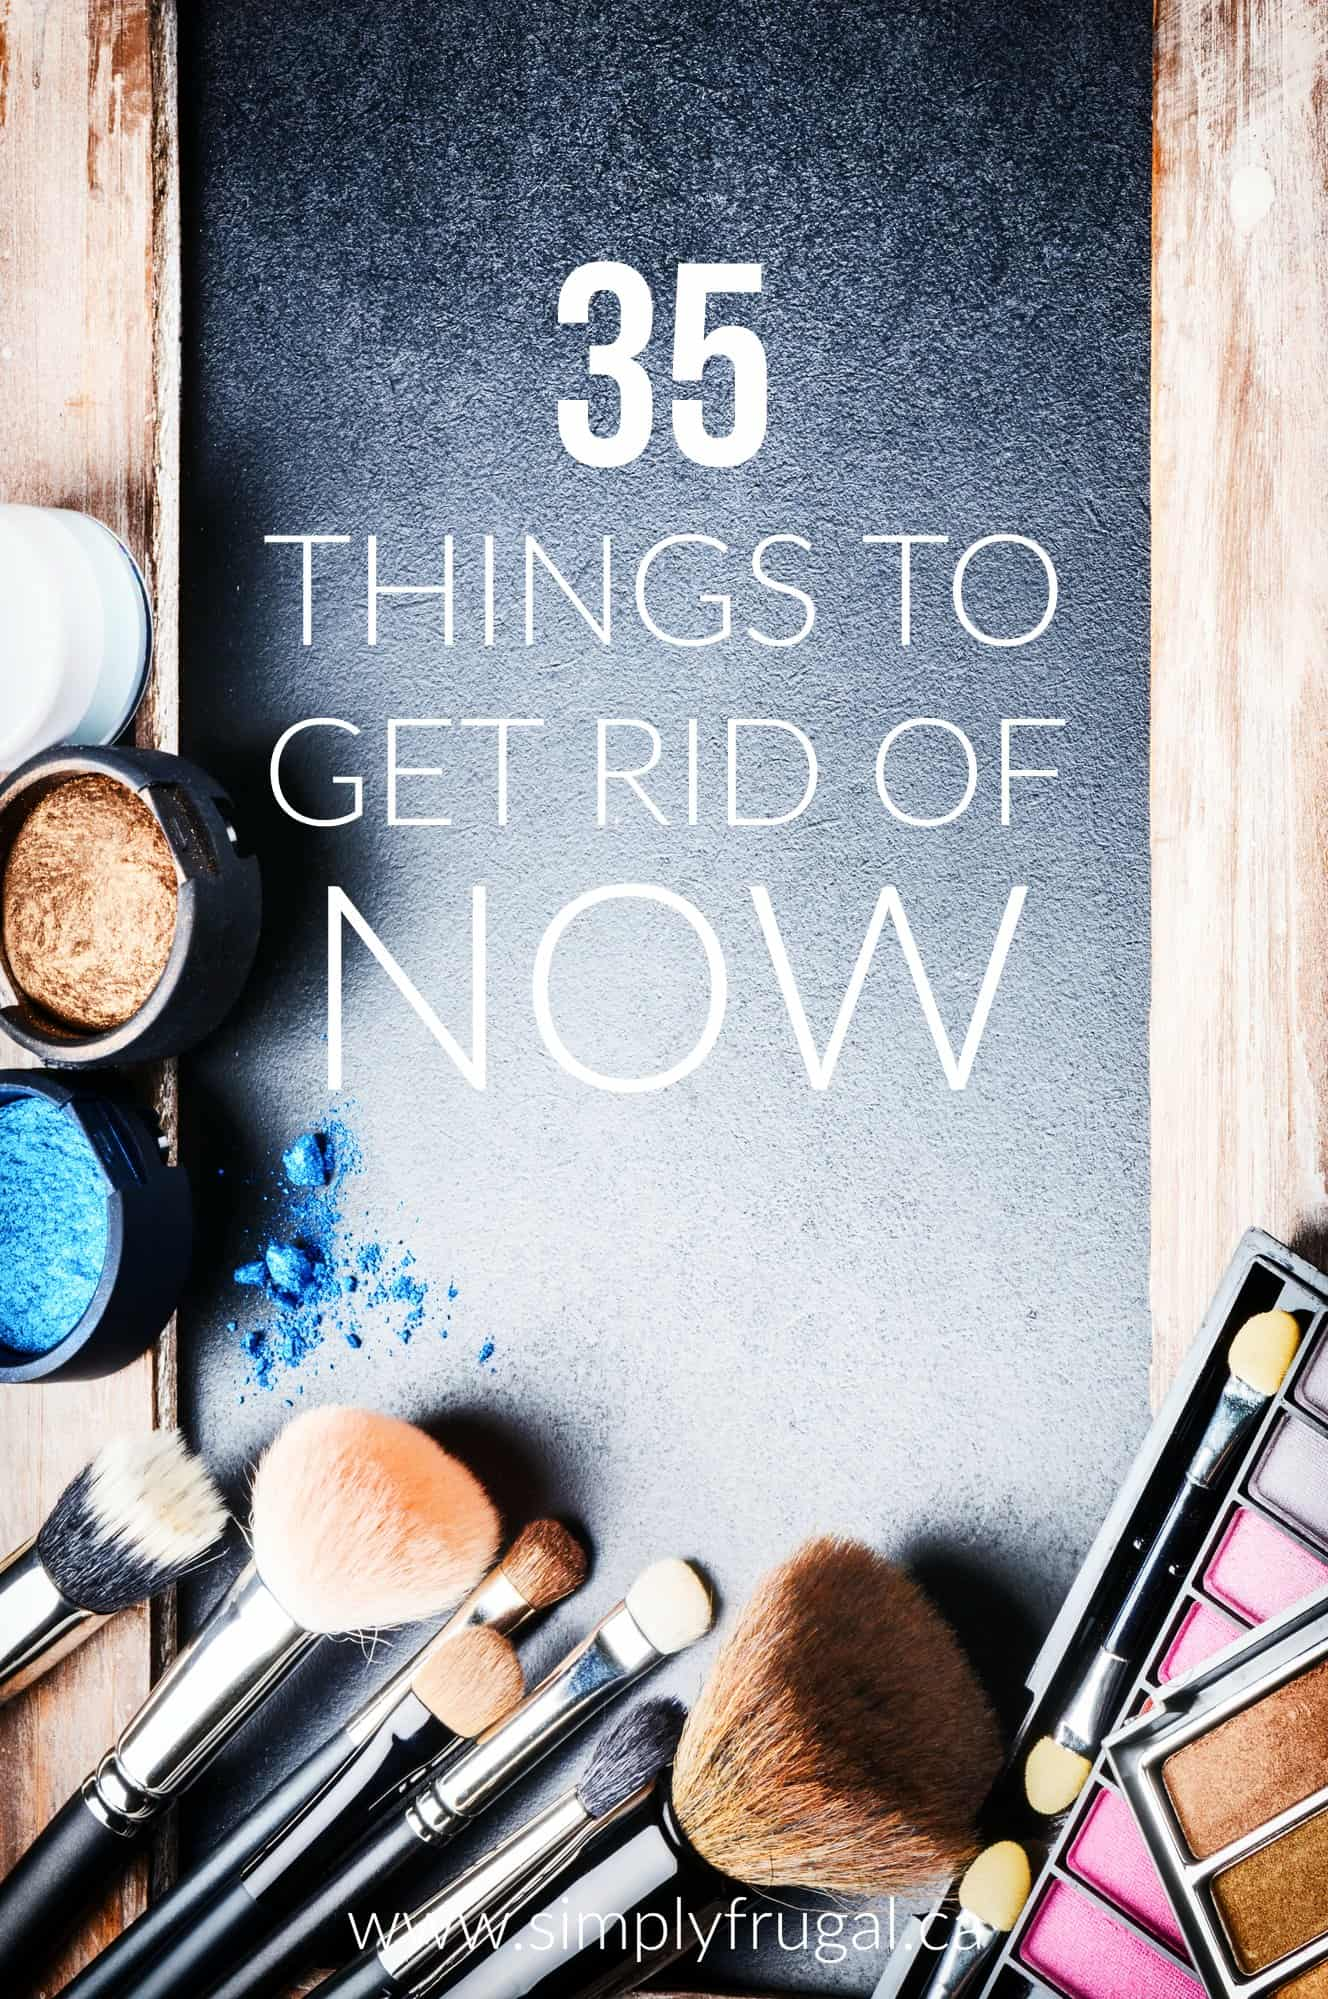 While you may think you have nothing left to donate or throw out if you're in the midst of a purge, here are 35 things to get rid of now.